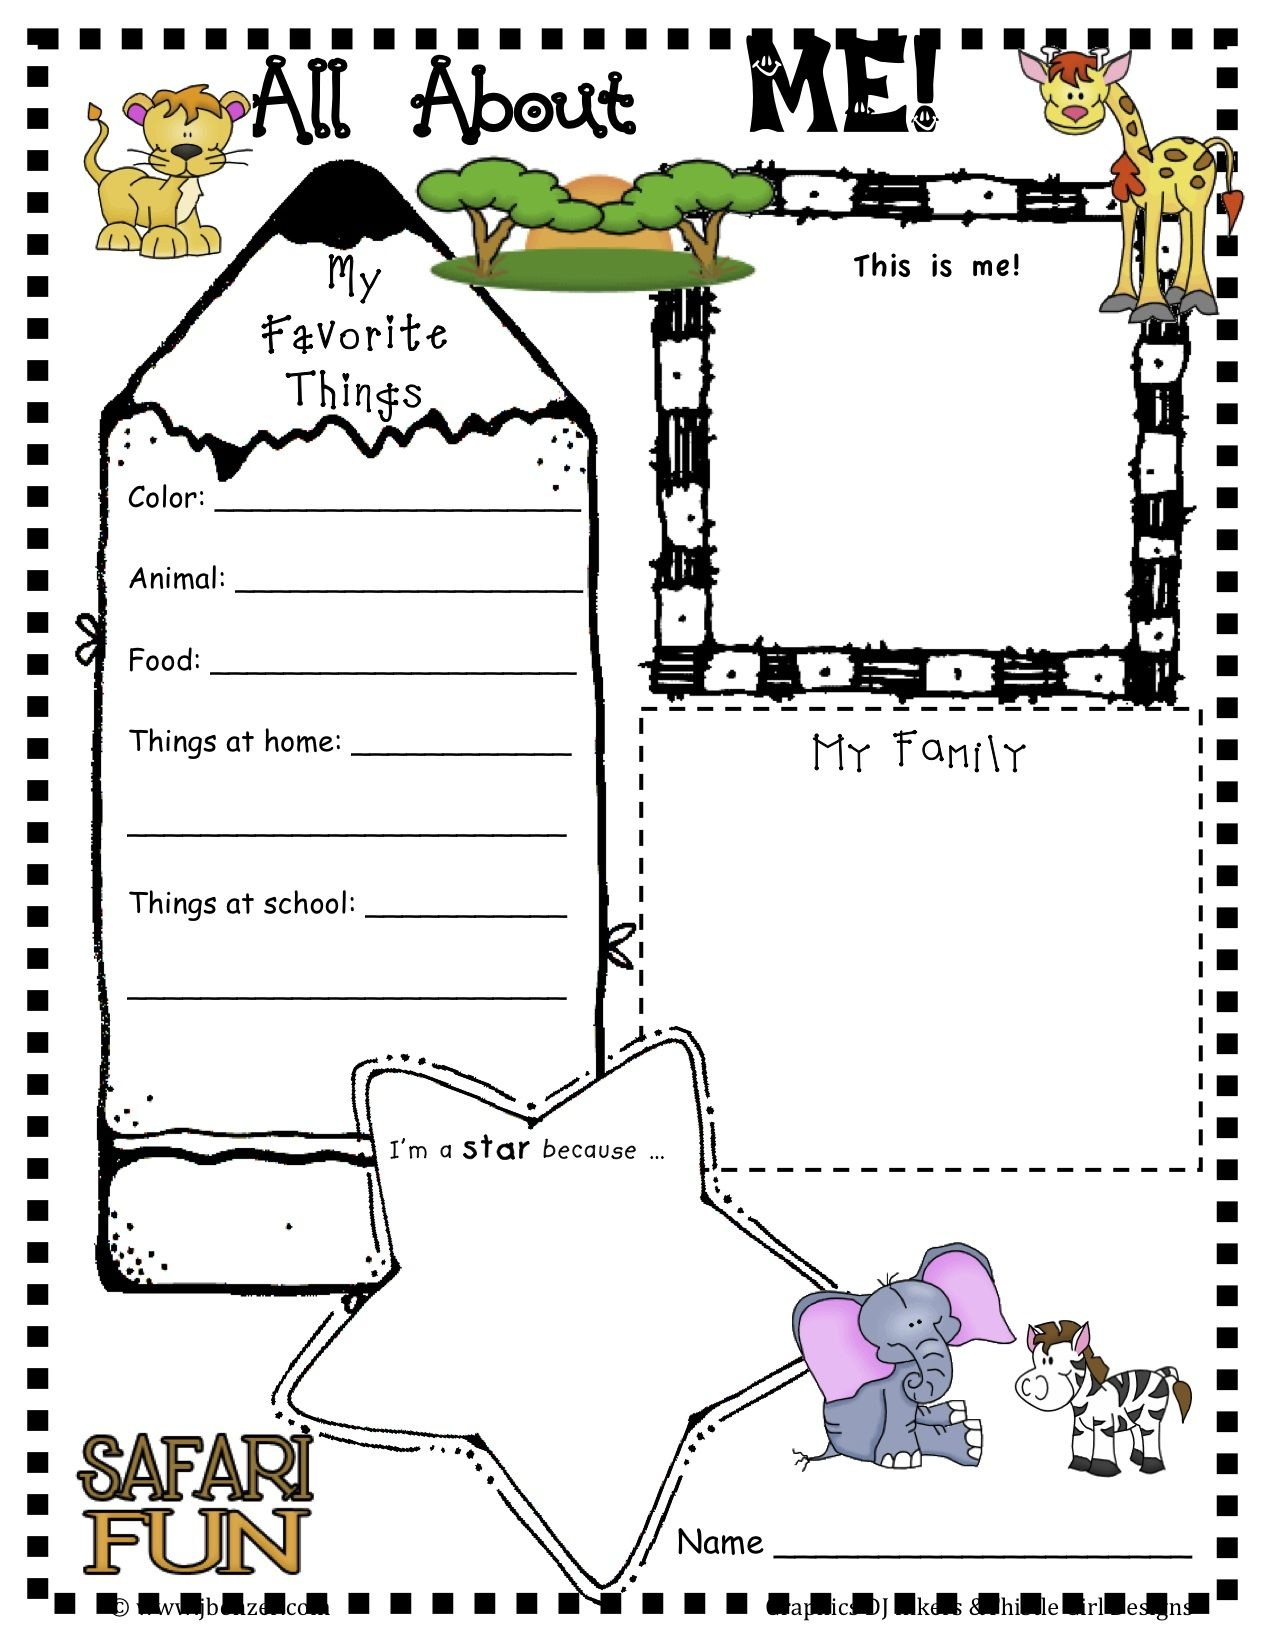 Loads Of Free Printables- Not Just For Back To School!! | Writing - Free Printable All About Me Poster